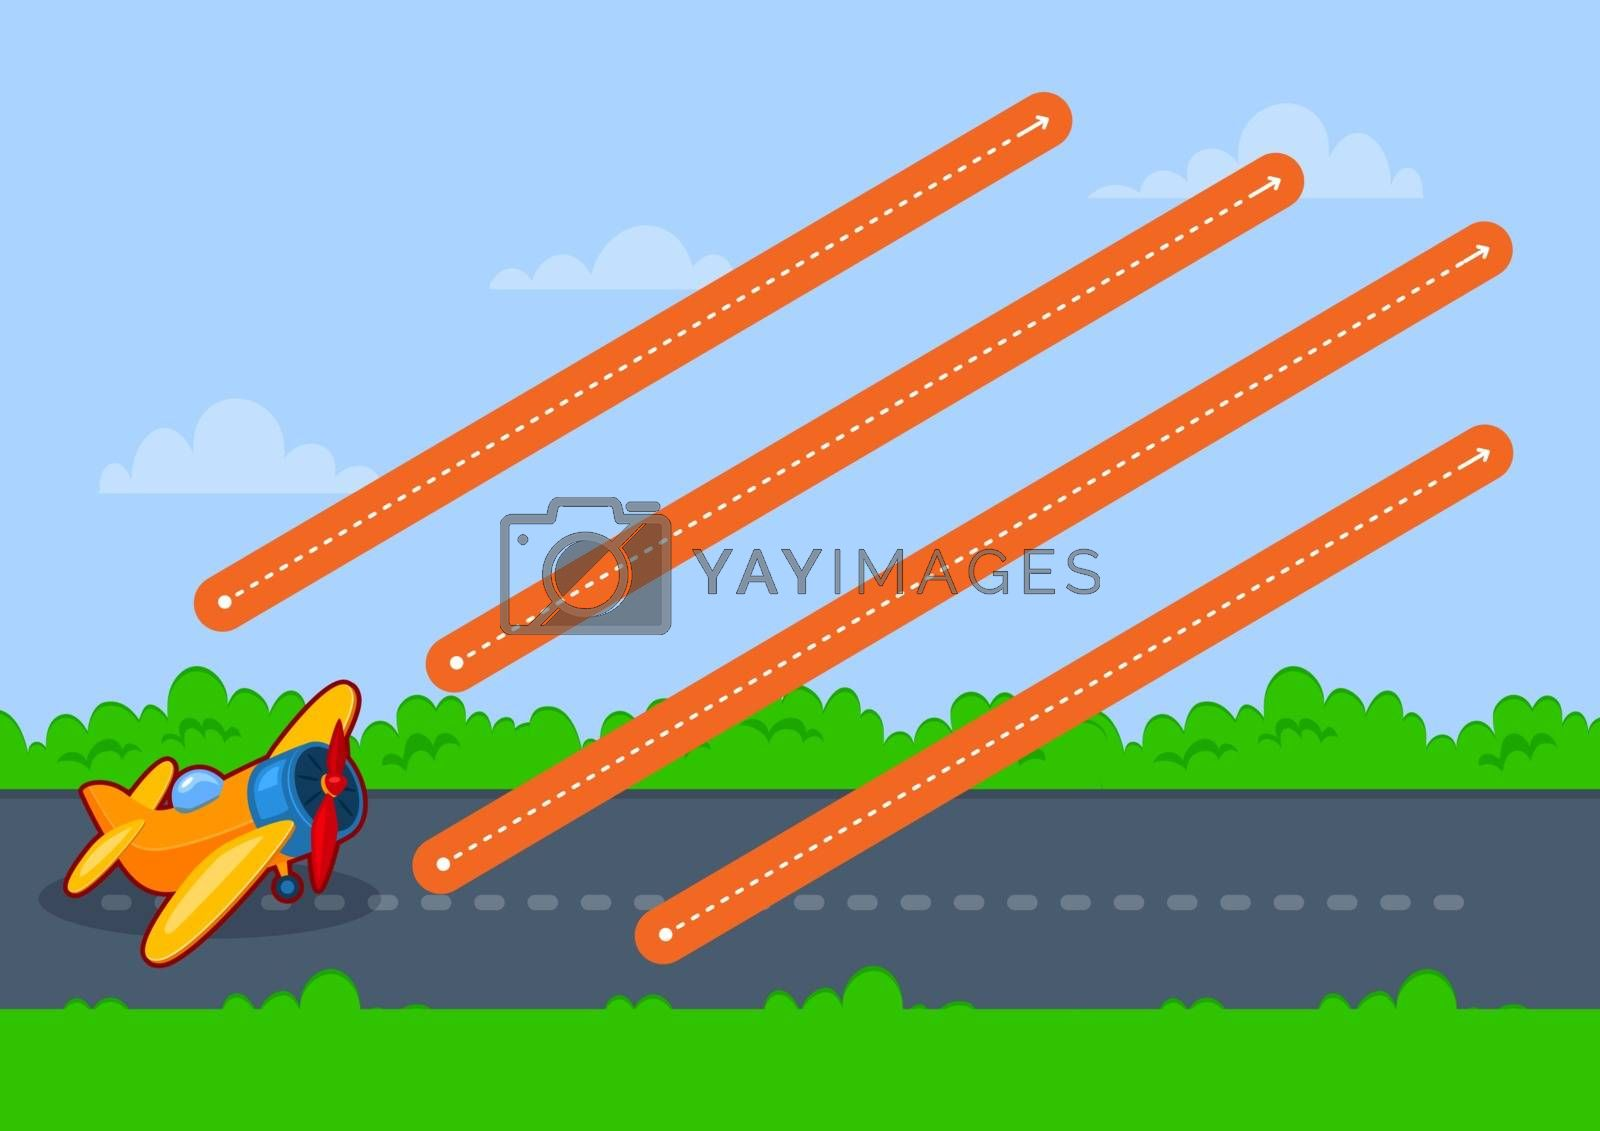 Educational printable games for the development of fine motor skills in kids. Baby's finger allow along the tracks. Vector illustration